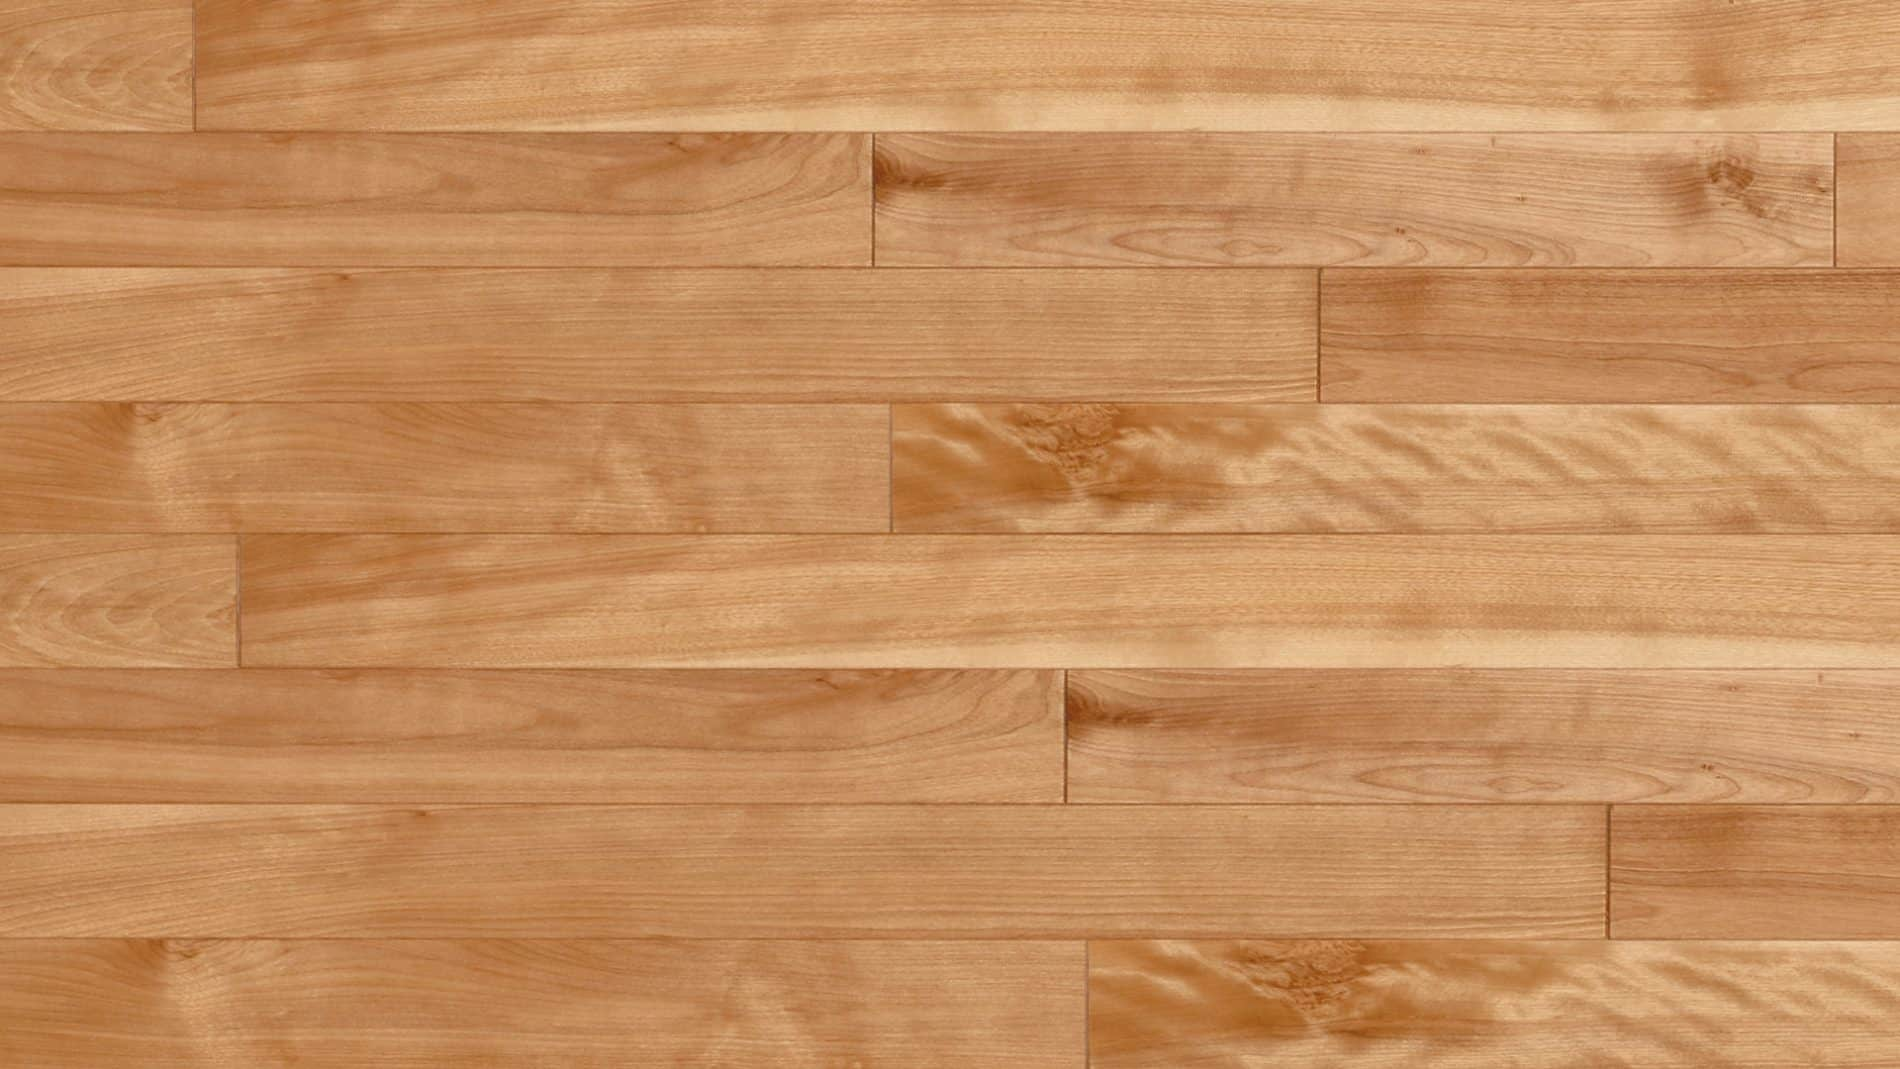 Hardwood floor | Red birch natural